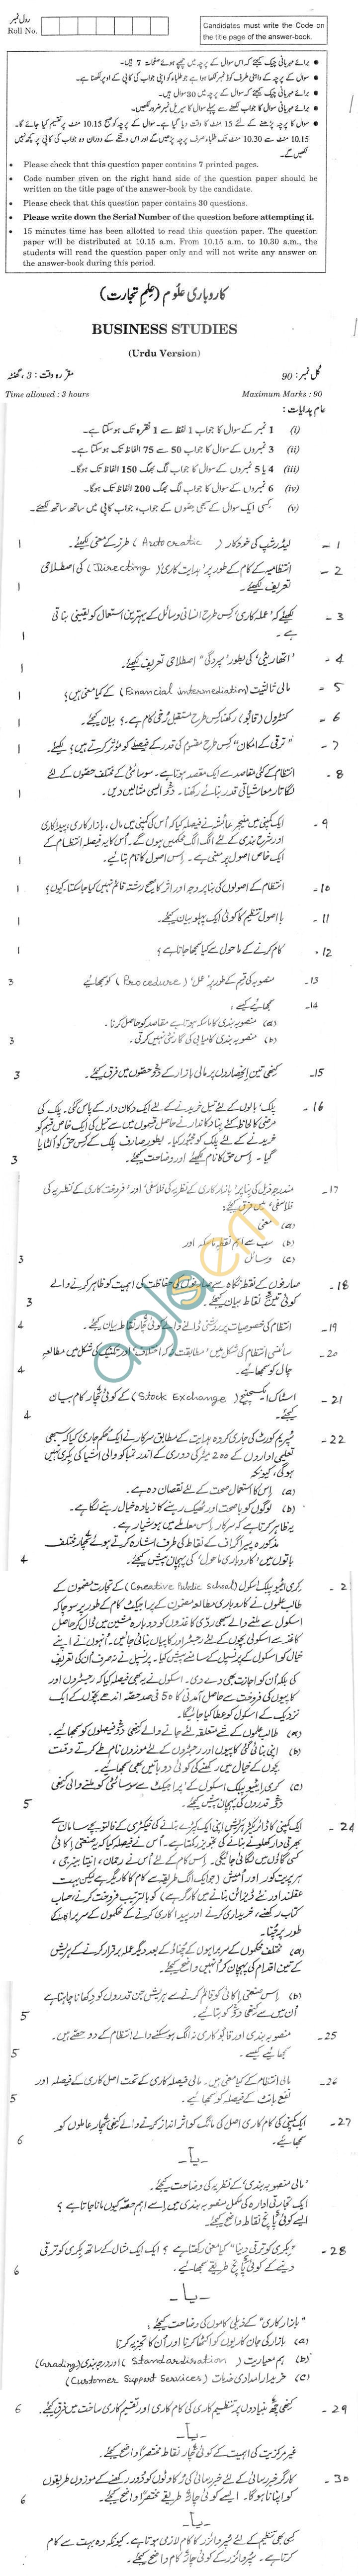 CBSE Compartment Exam 2013 Class XII Question Paper - Business Studies Urdu Version